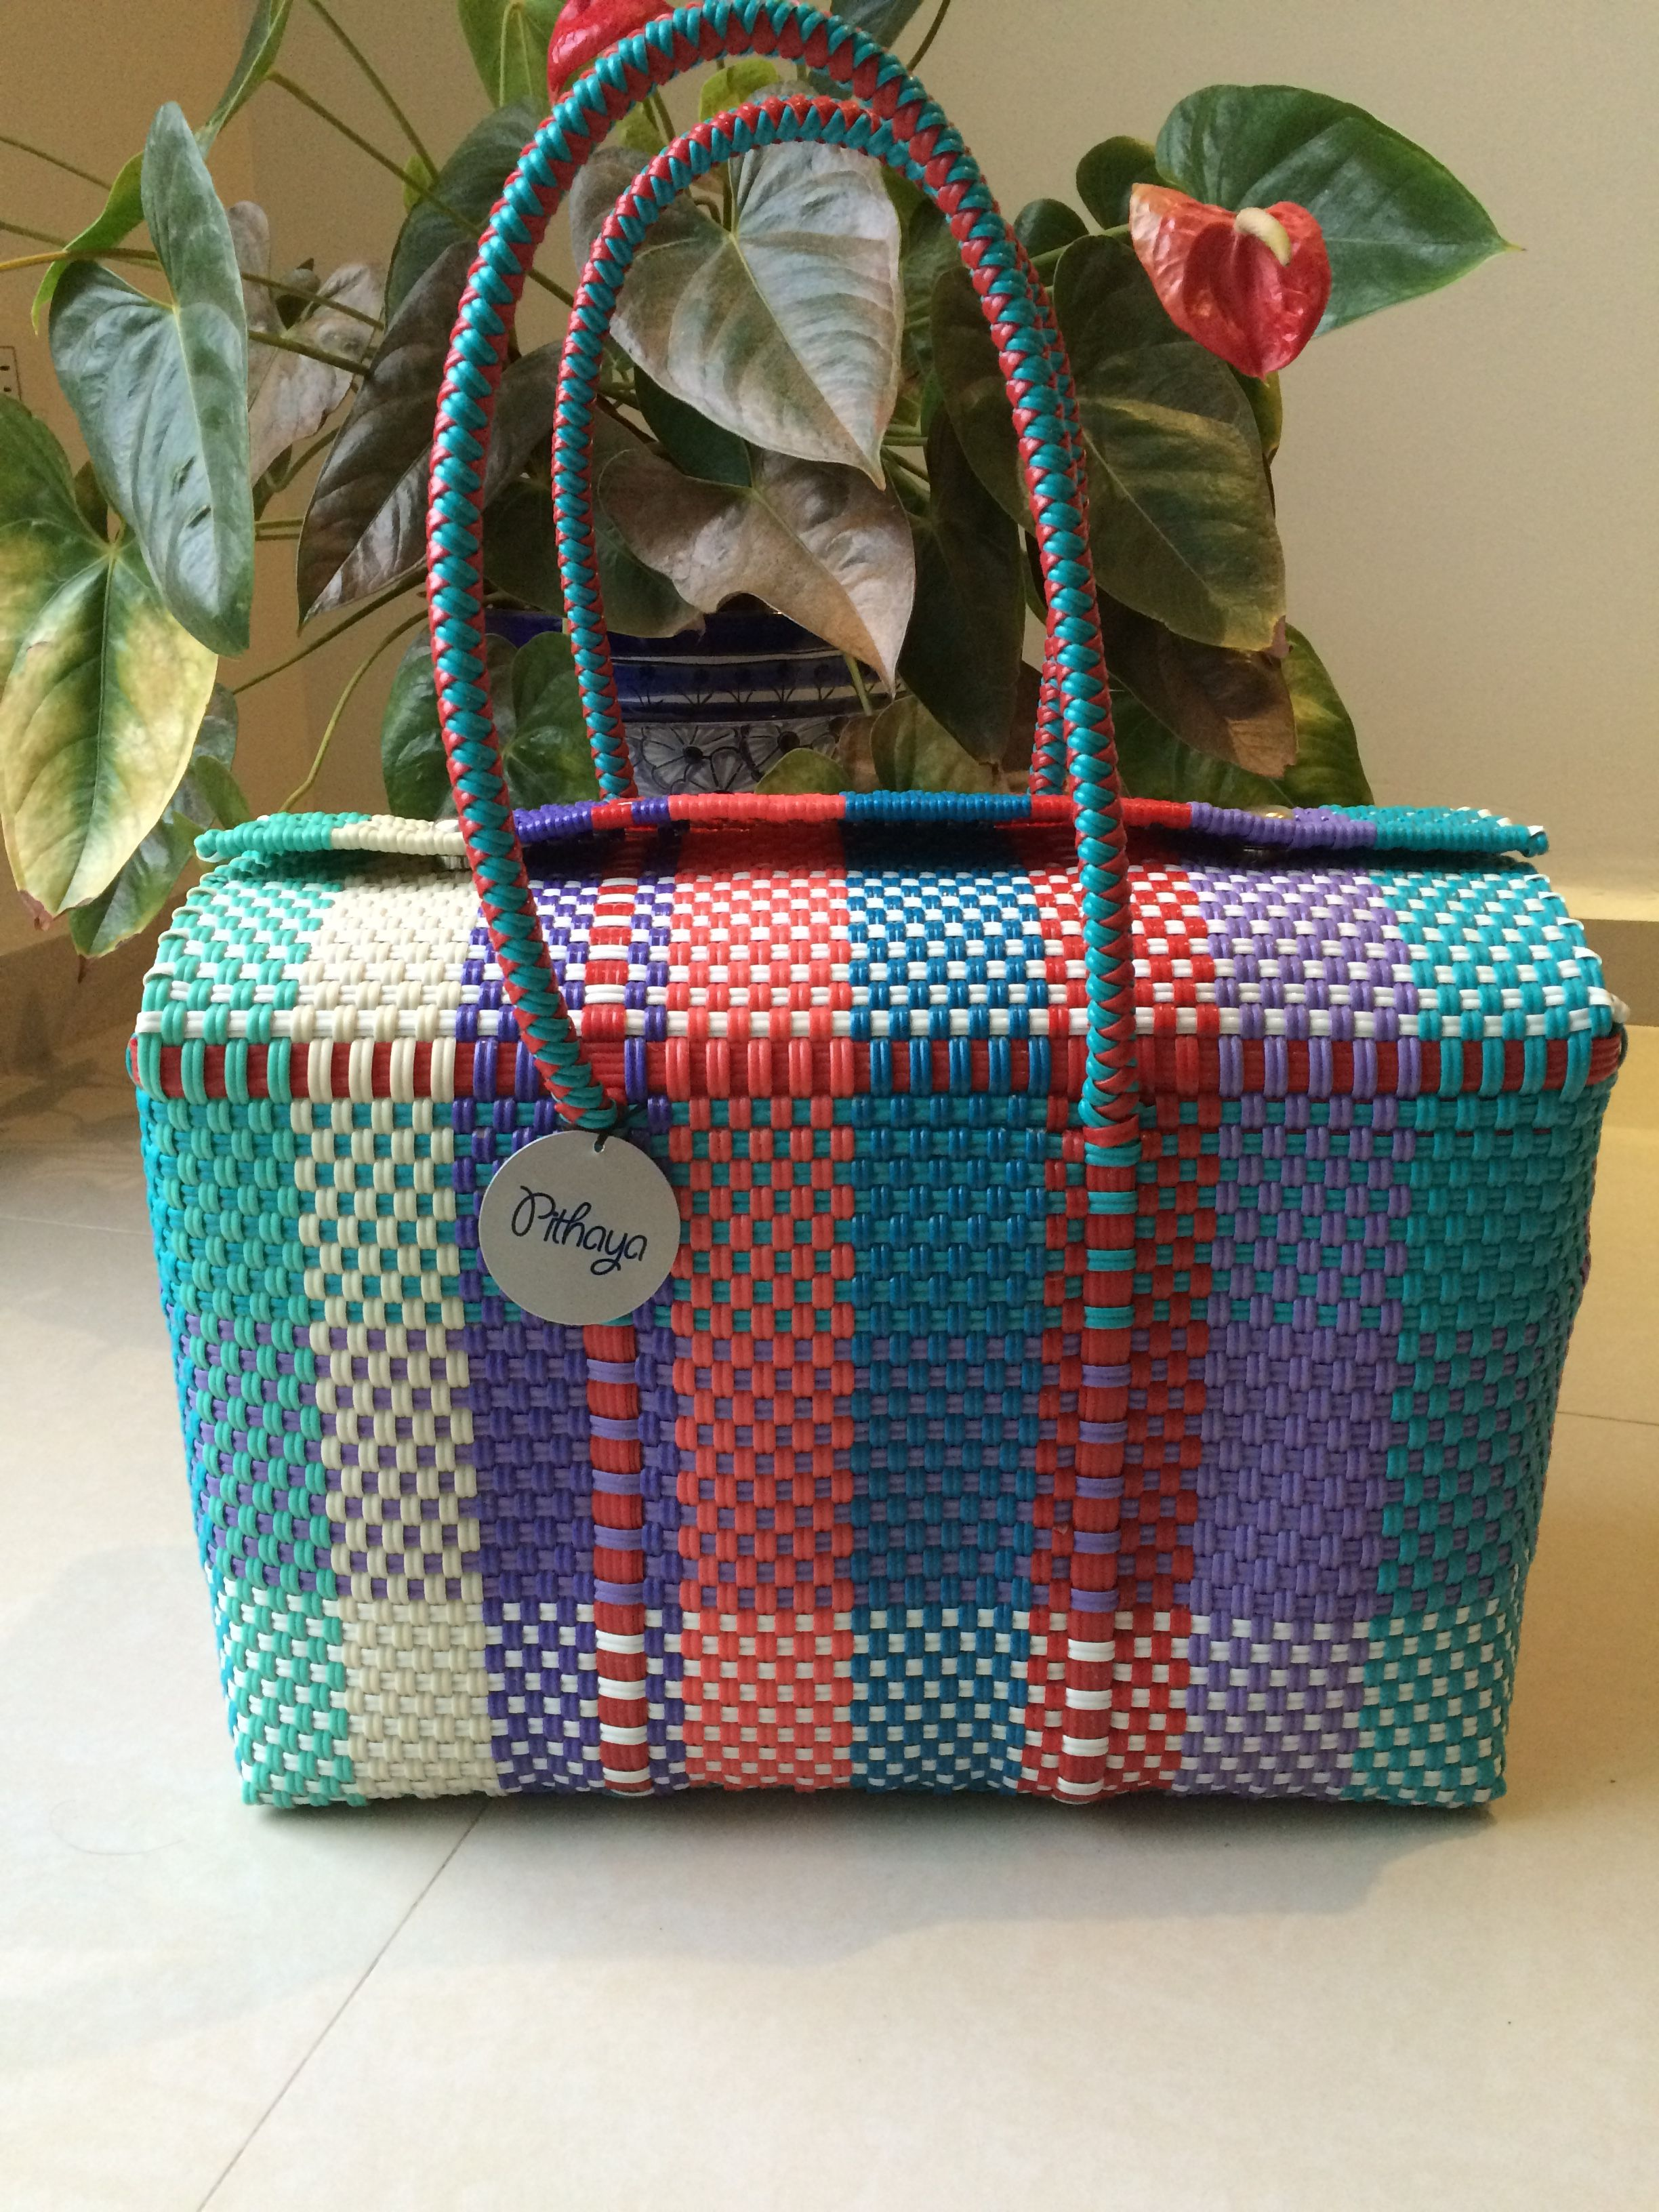 This Beautiful Beach Bag Will Carry Everything And Anything You Need To Go The Or A Picnic No Hazzle In Fashion Large Size